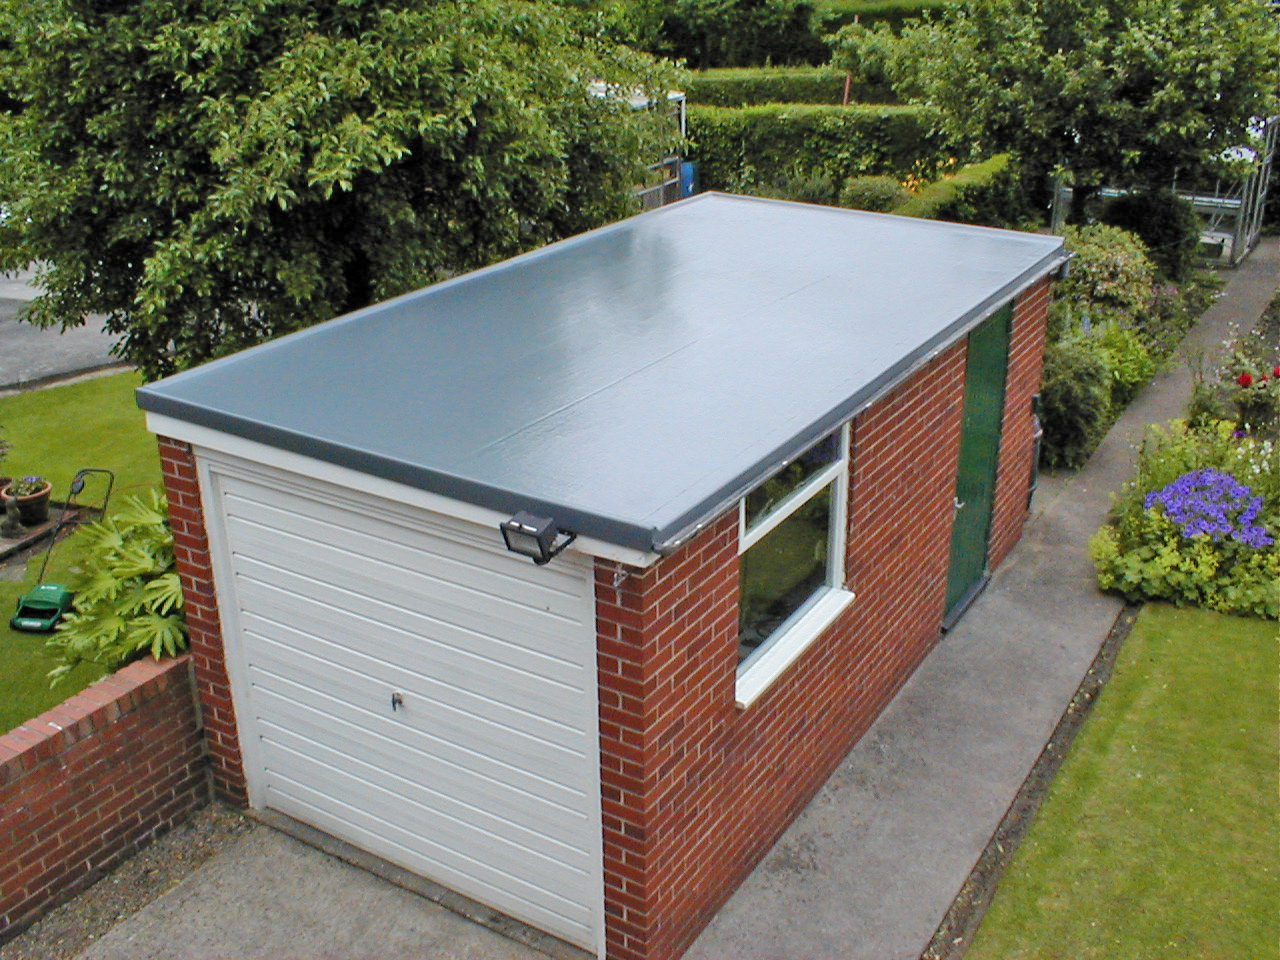 FLAT ROOF REPAIRS | GARAGE ROOF REPAIRS |FREE ESTIMATES 0131 476 2122